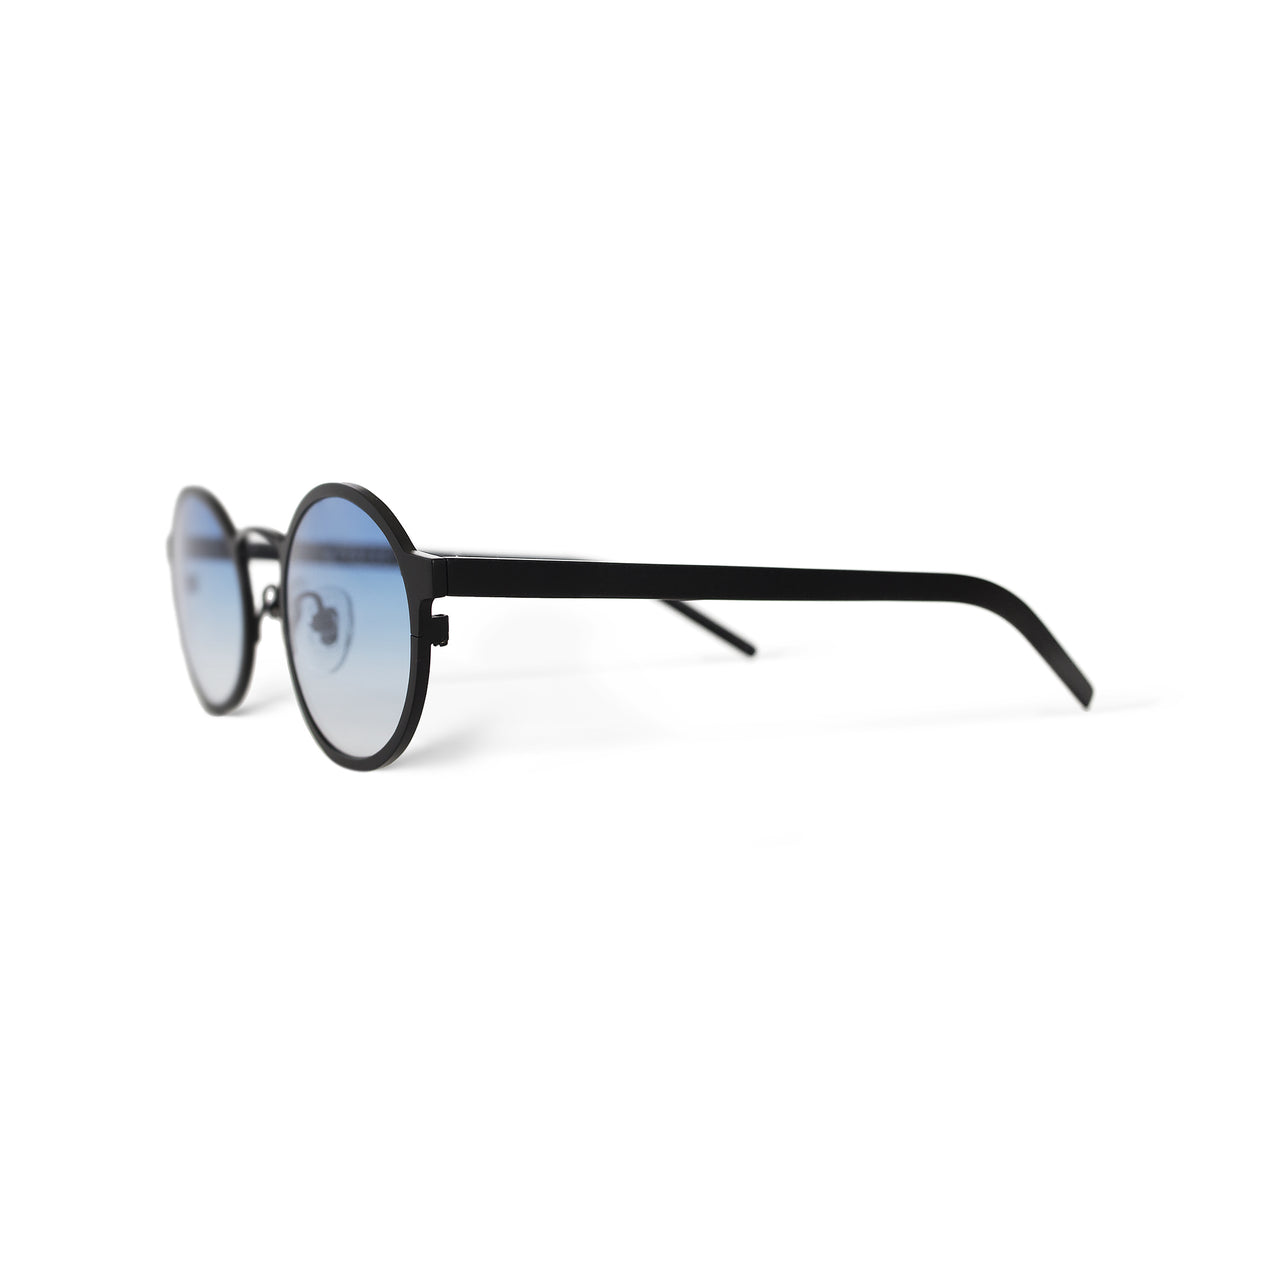 Metal. Gloss Black. Ocean Lens. - BLYSZAK eyewear eyewear - eyewear, optical, sunglasses